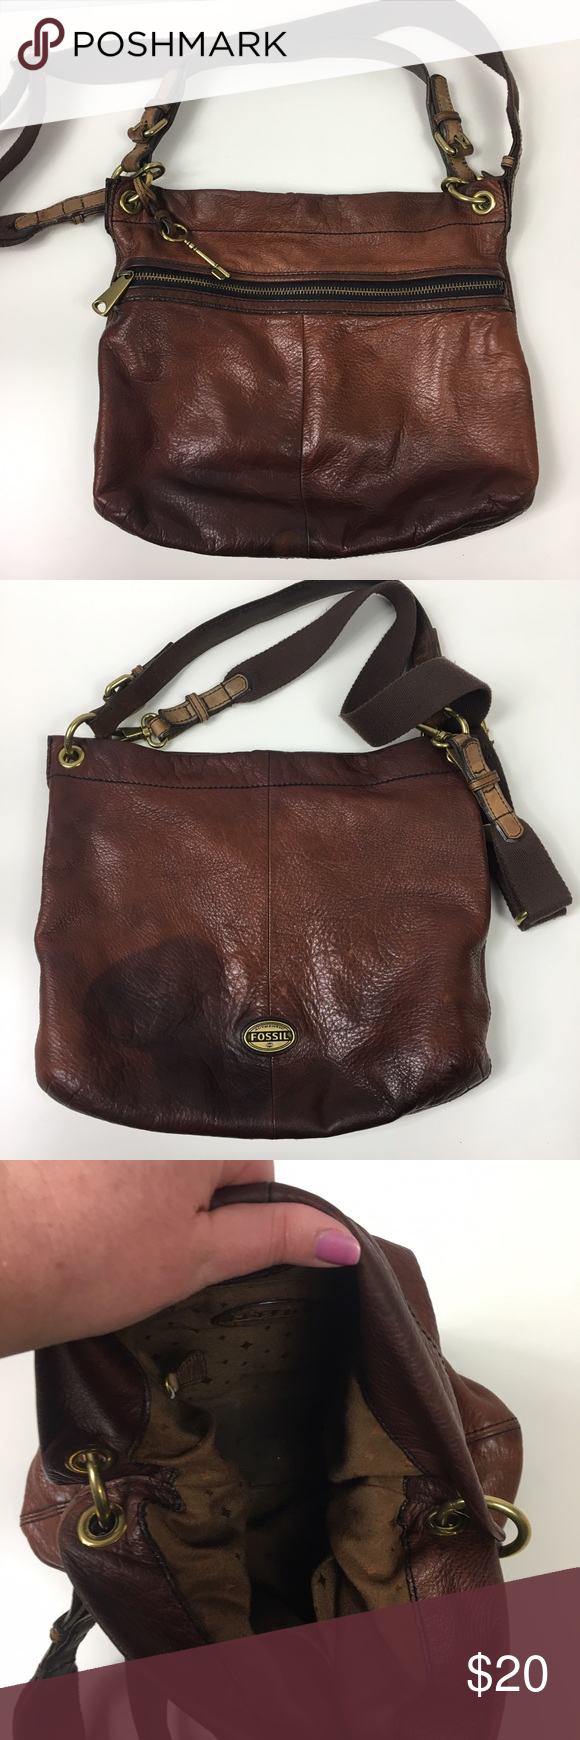 Brown Classic Fossil Shoulder or cross-body Purse Very worn in! Personally I like the look, very boho chic. Lots of wear/color change in the leather. Still structurally sound just worn in. No trades Fossil Bags